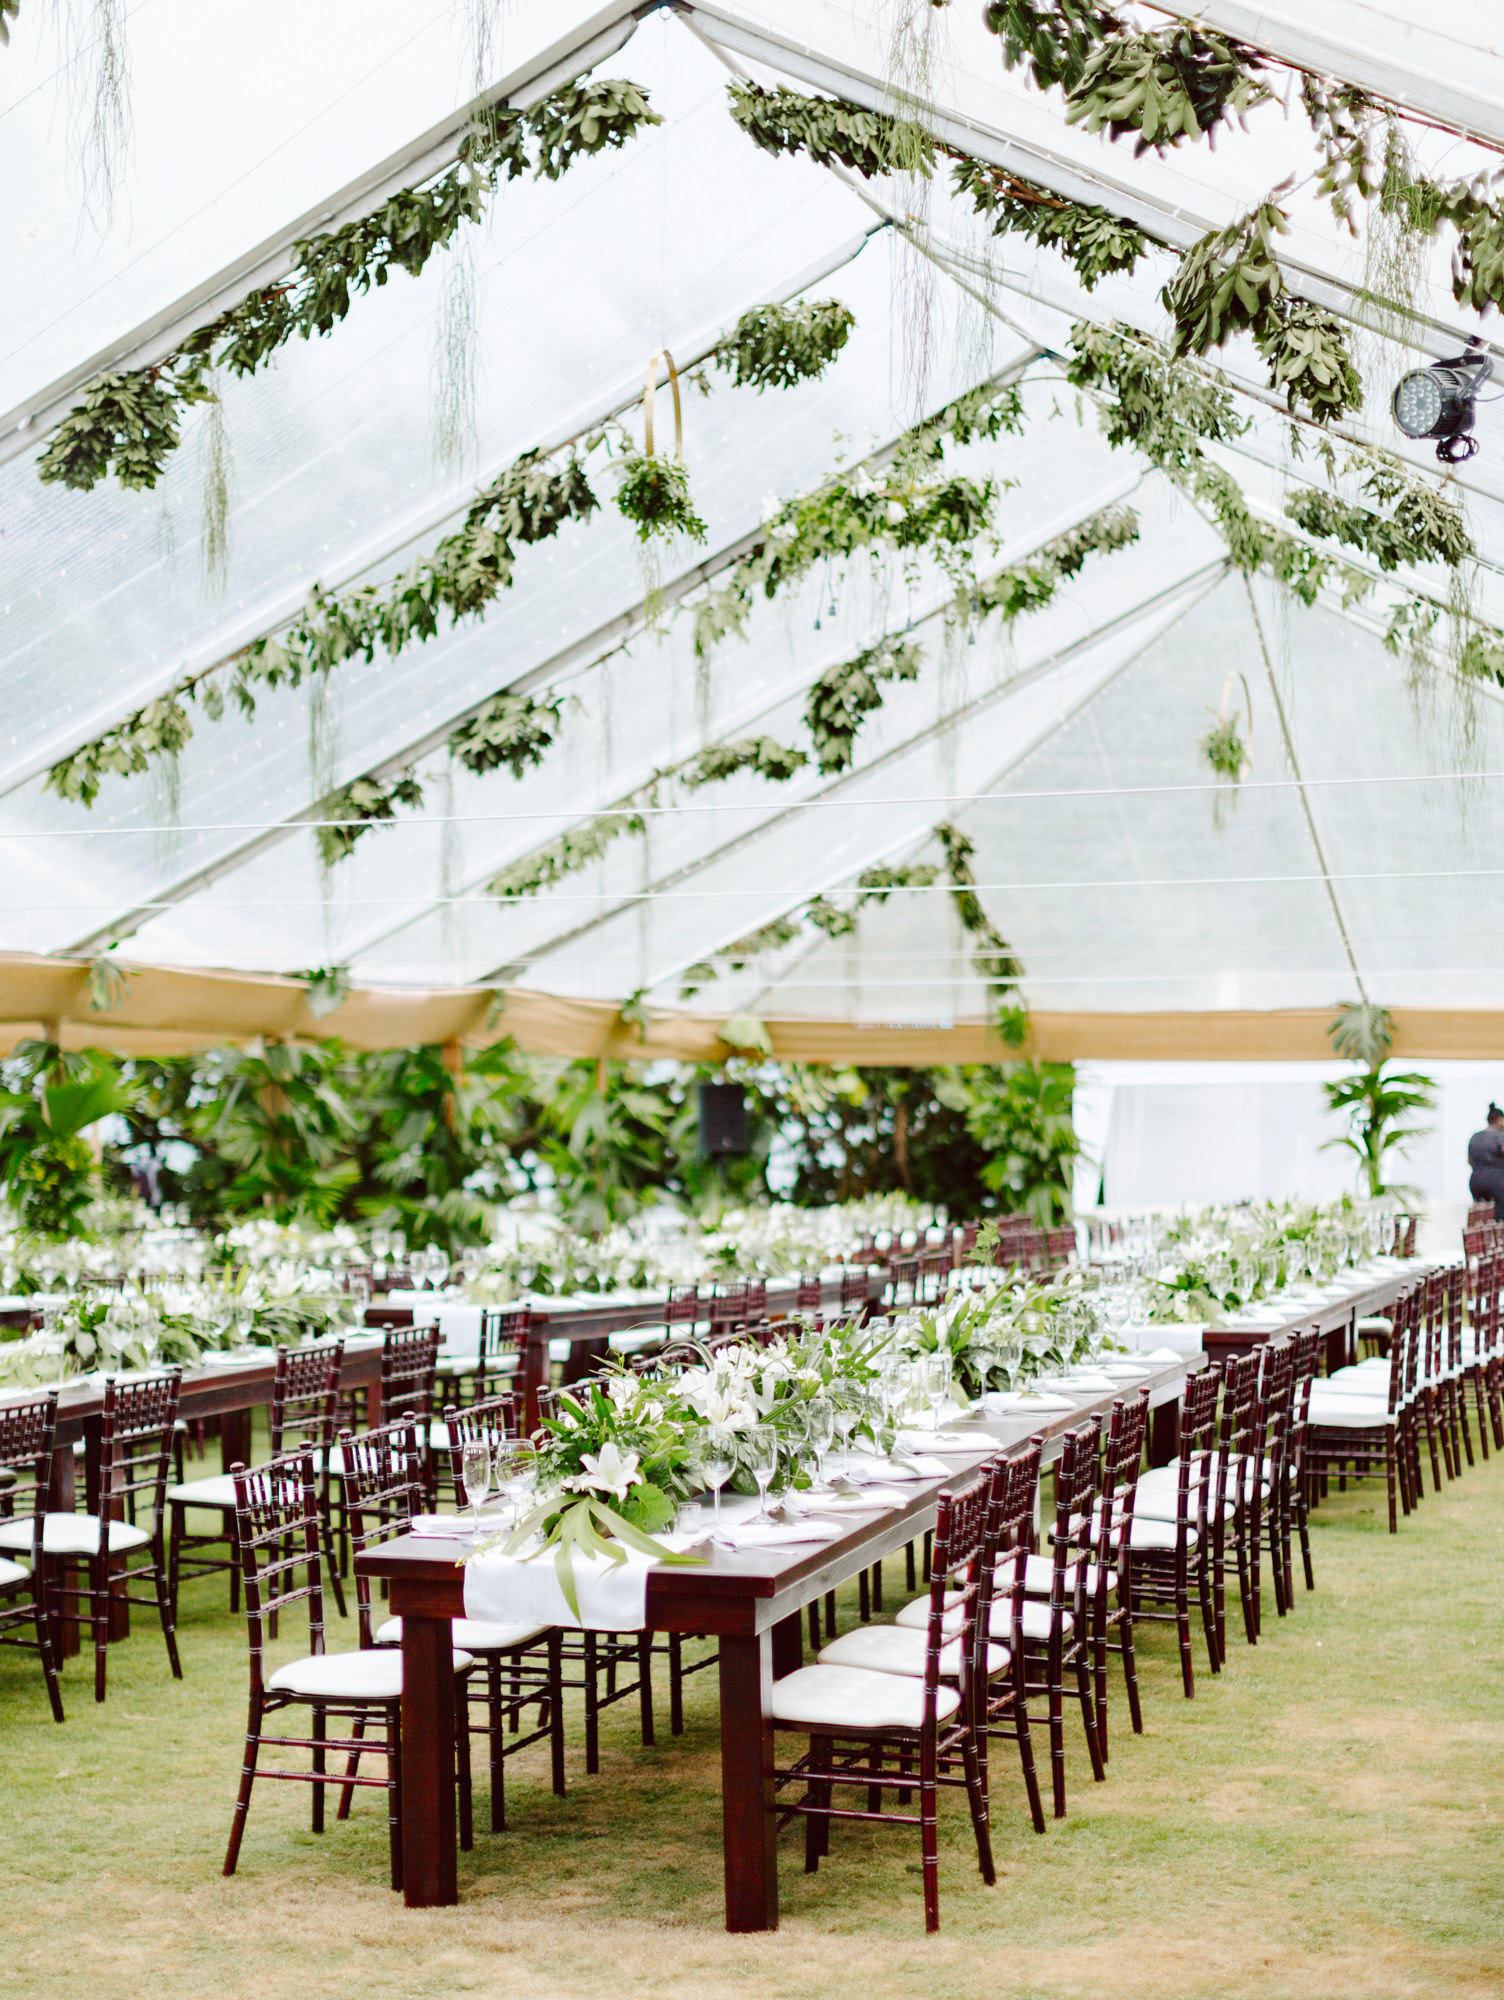 Greenery lined tent with wooden seating  -  photo by Benj Haisch